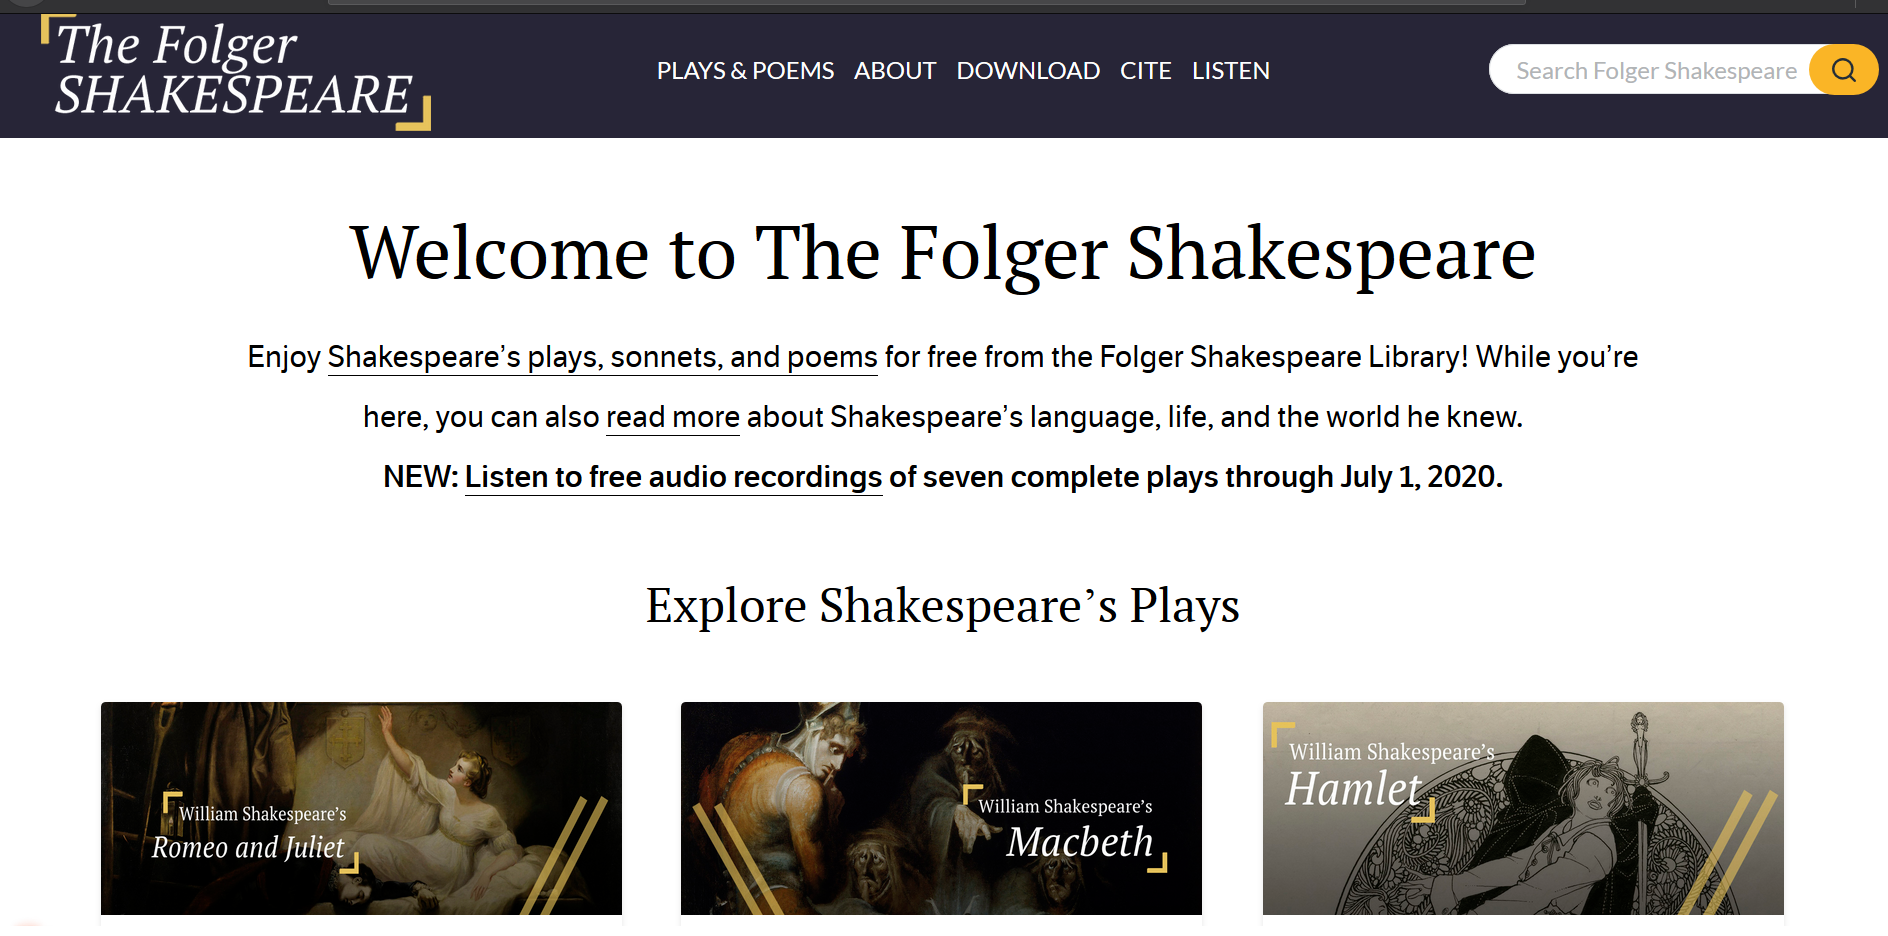 Screencapture of the homepage of The Folger Shakespeare at shakespeare.folger.edu